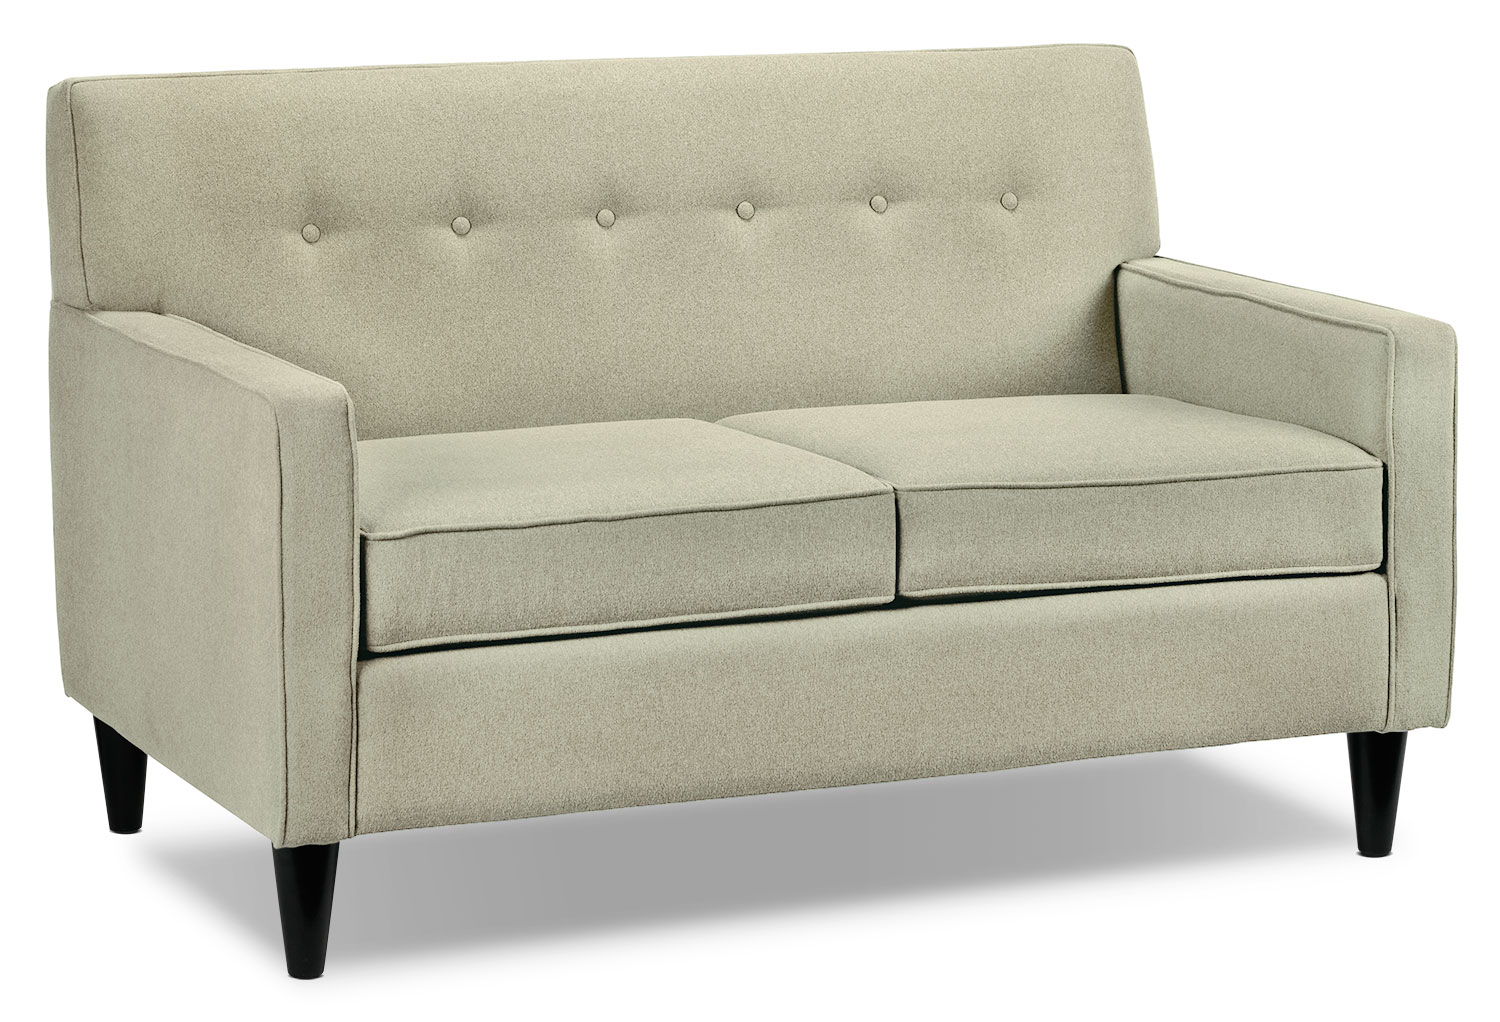 Living Room Furniture - Passerina Loveseat - Truffle